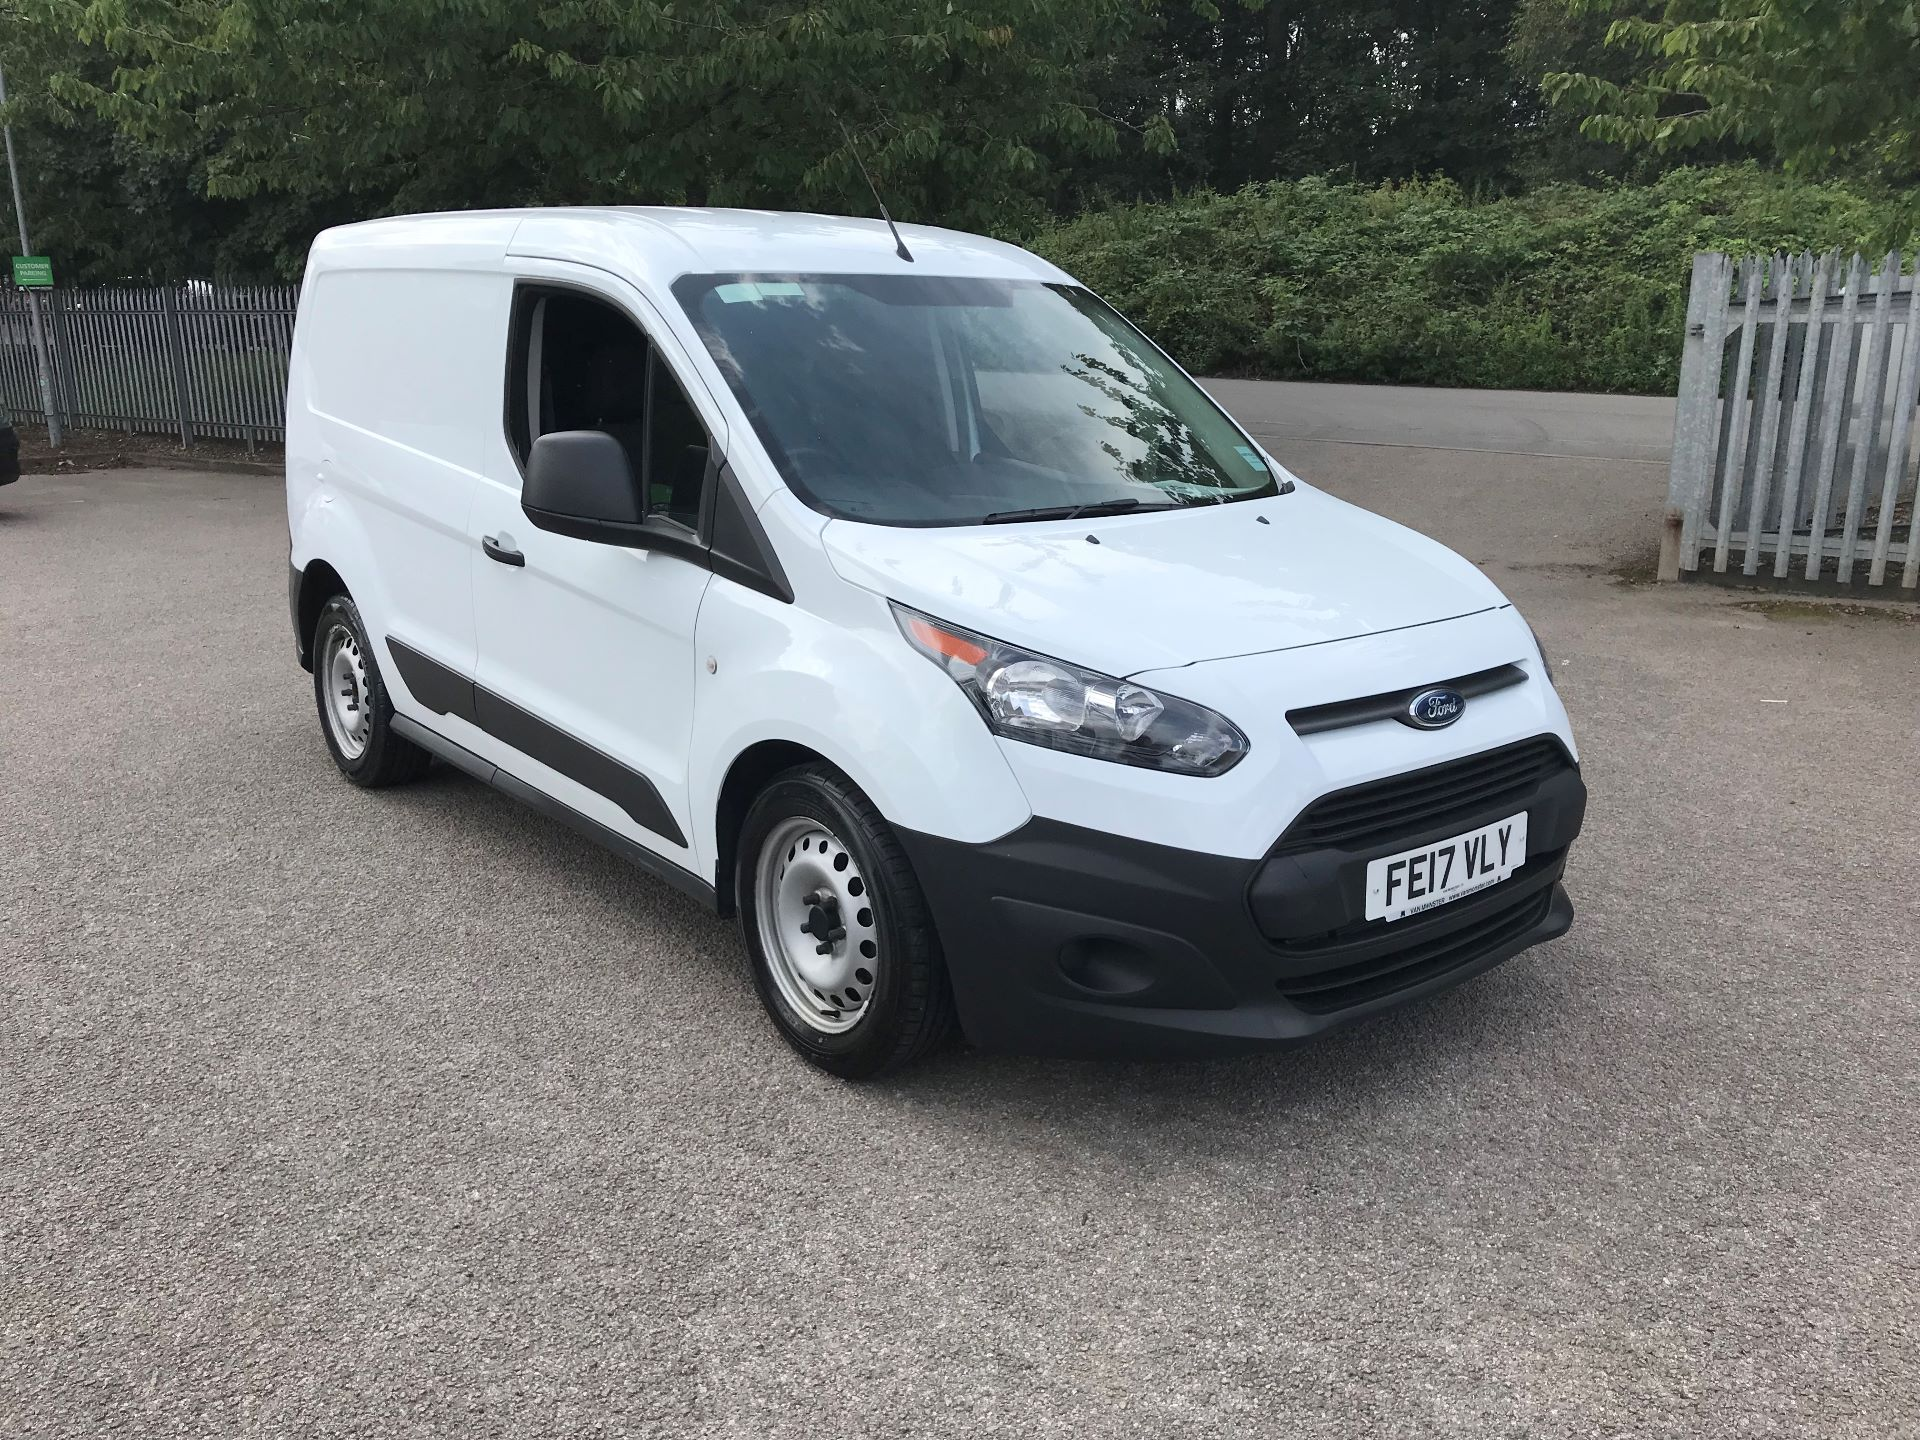 2017 Ford Transit Connect 1.5 Tdci 75Ps Van (FE17VLY) Image 1